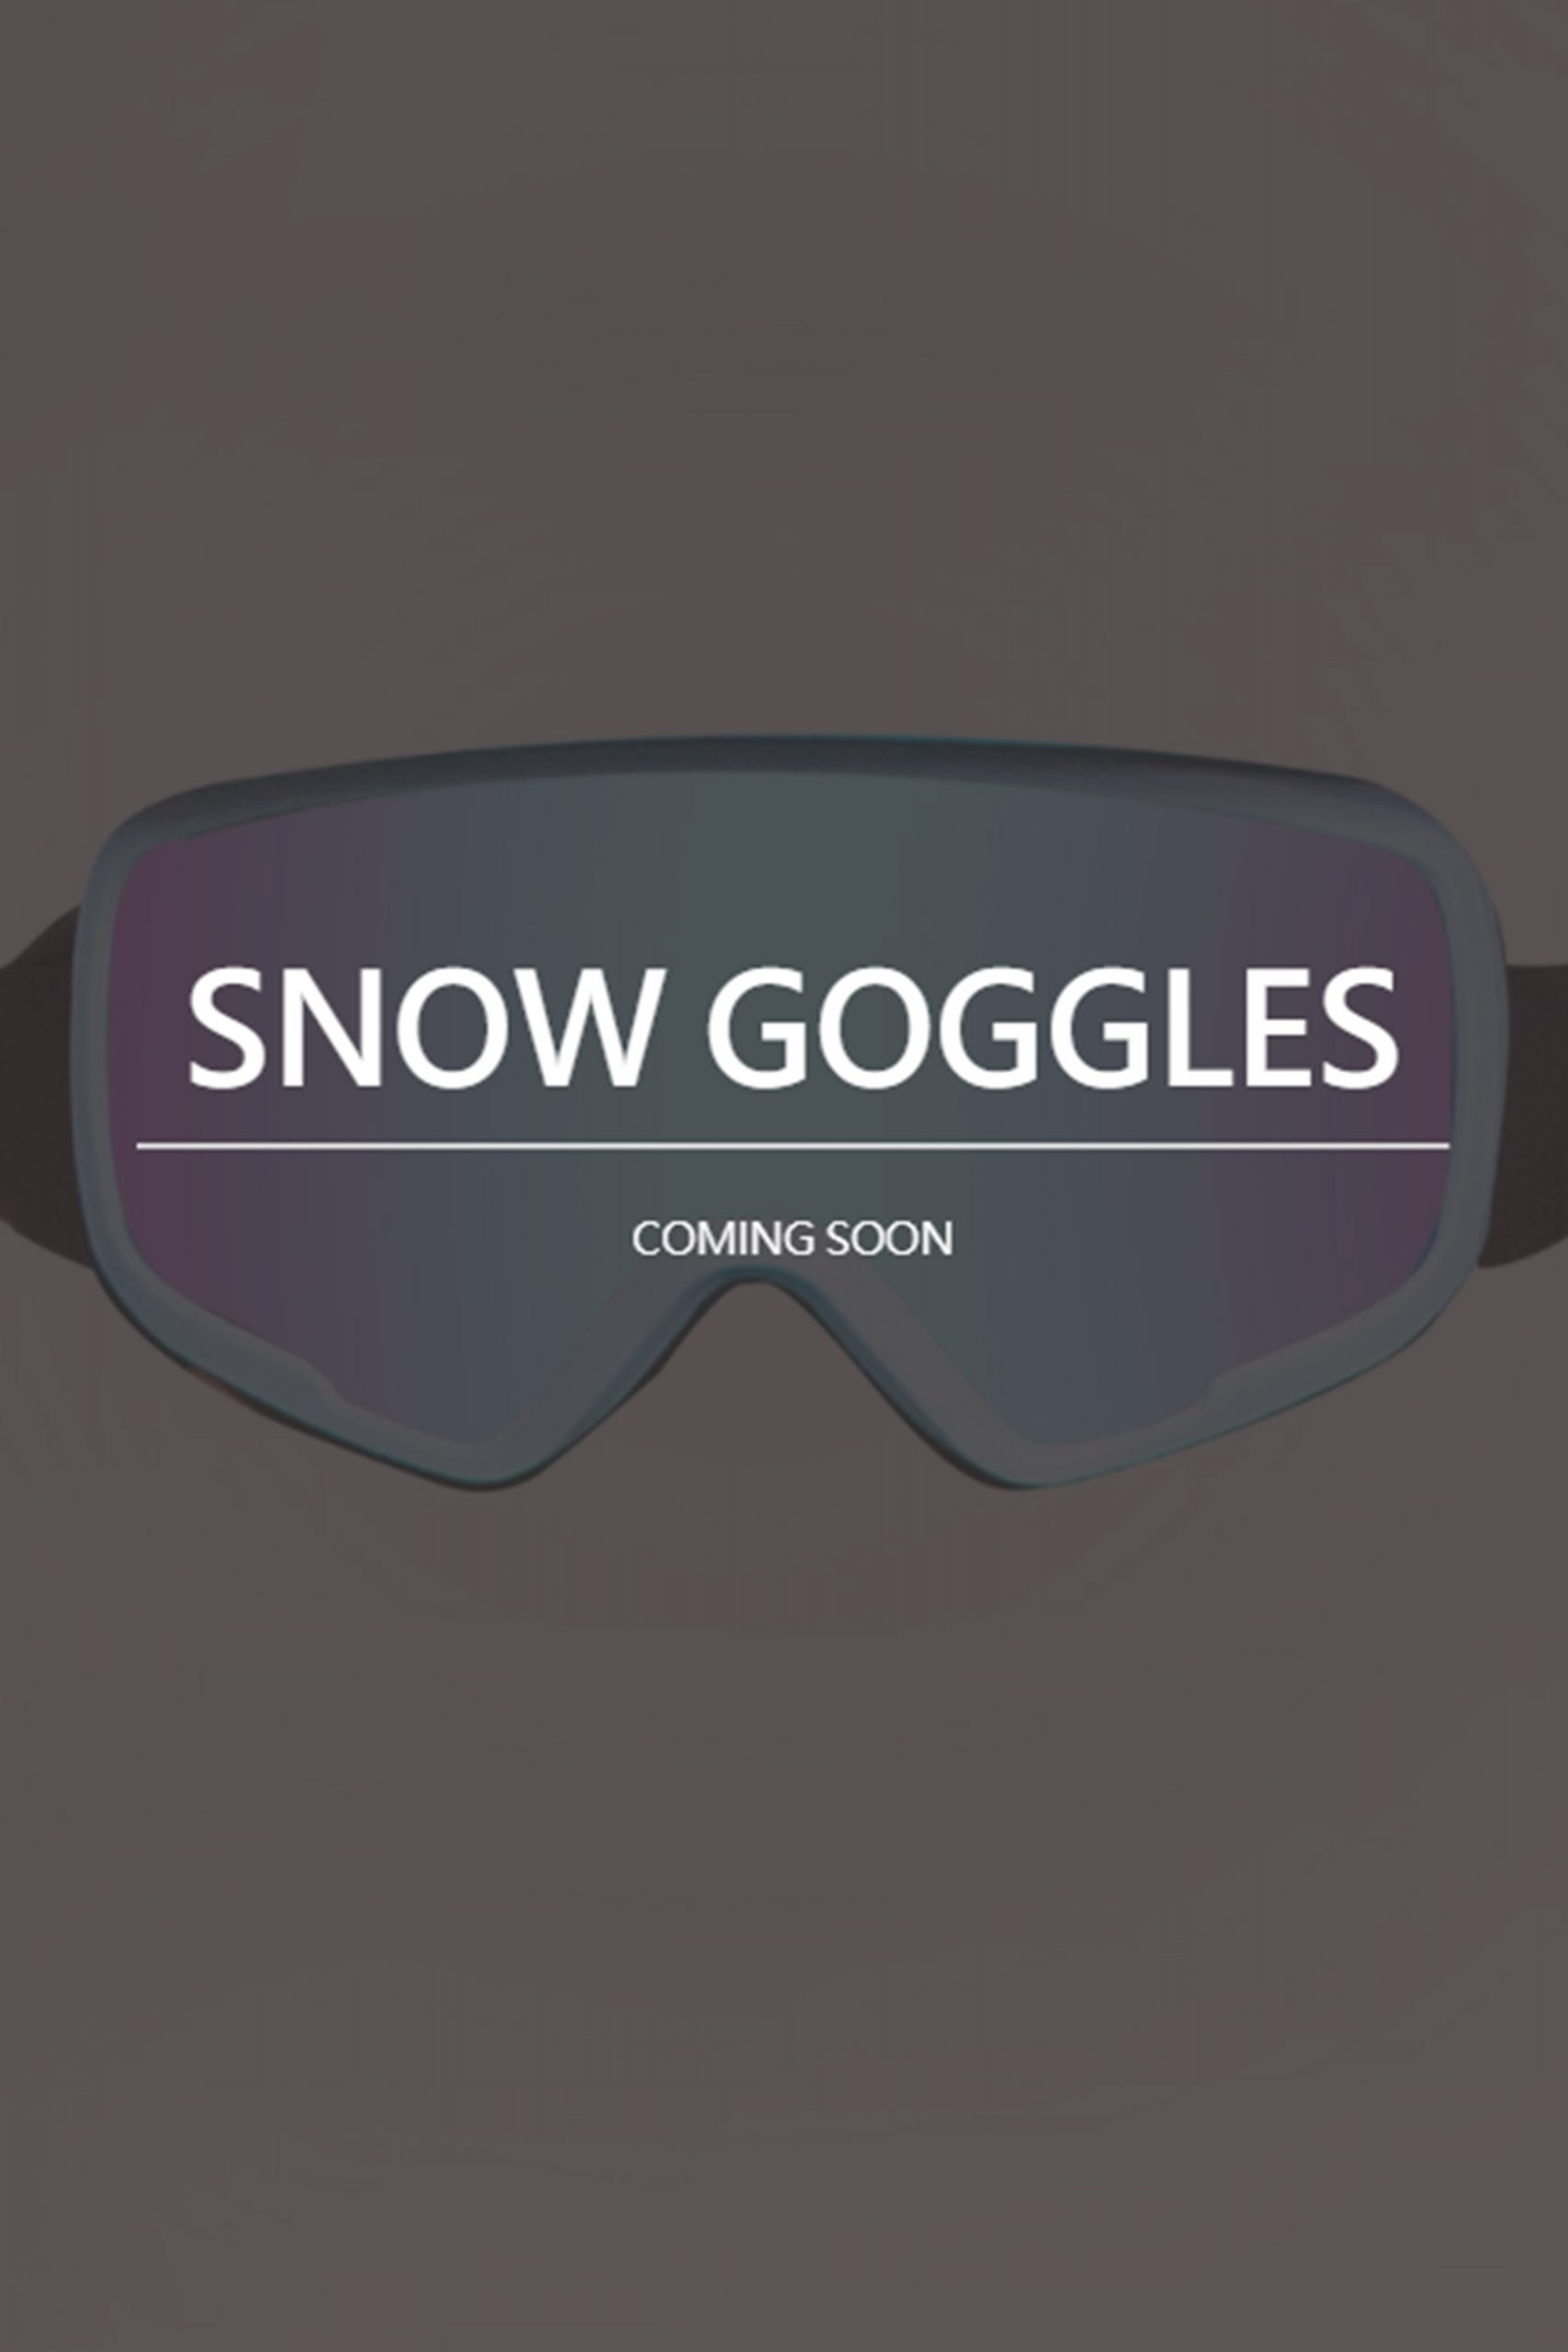 snow goggles coming soon